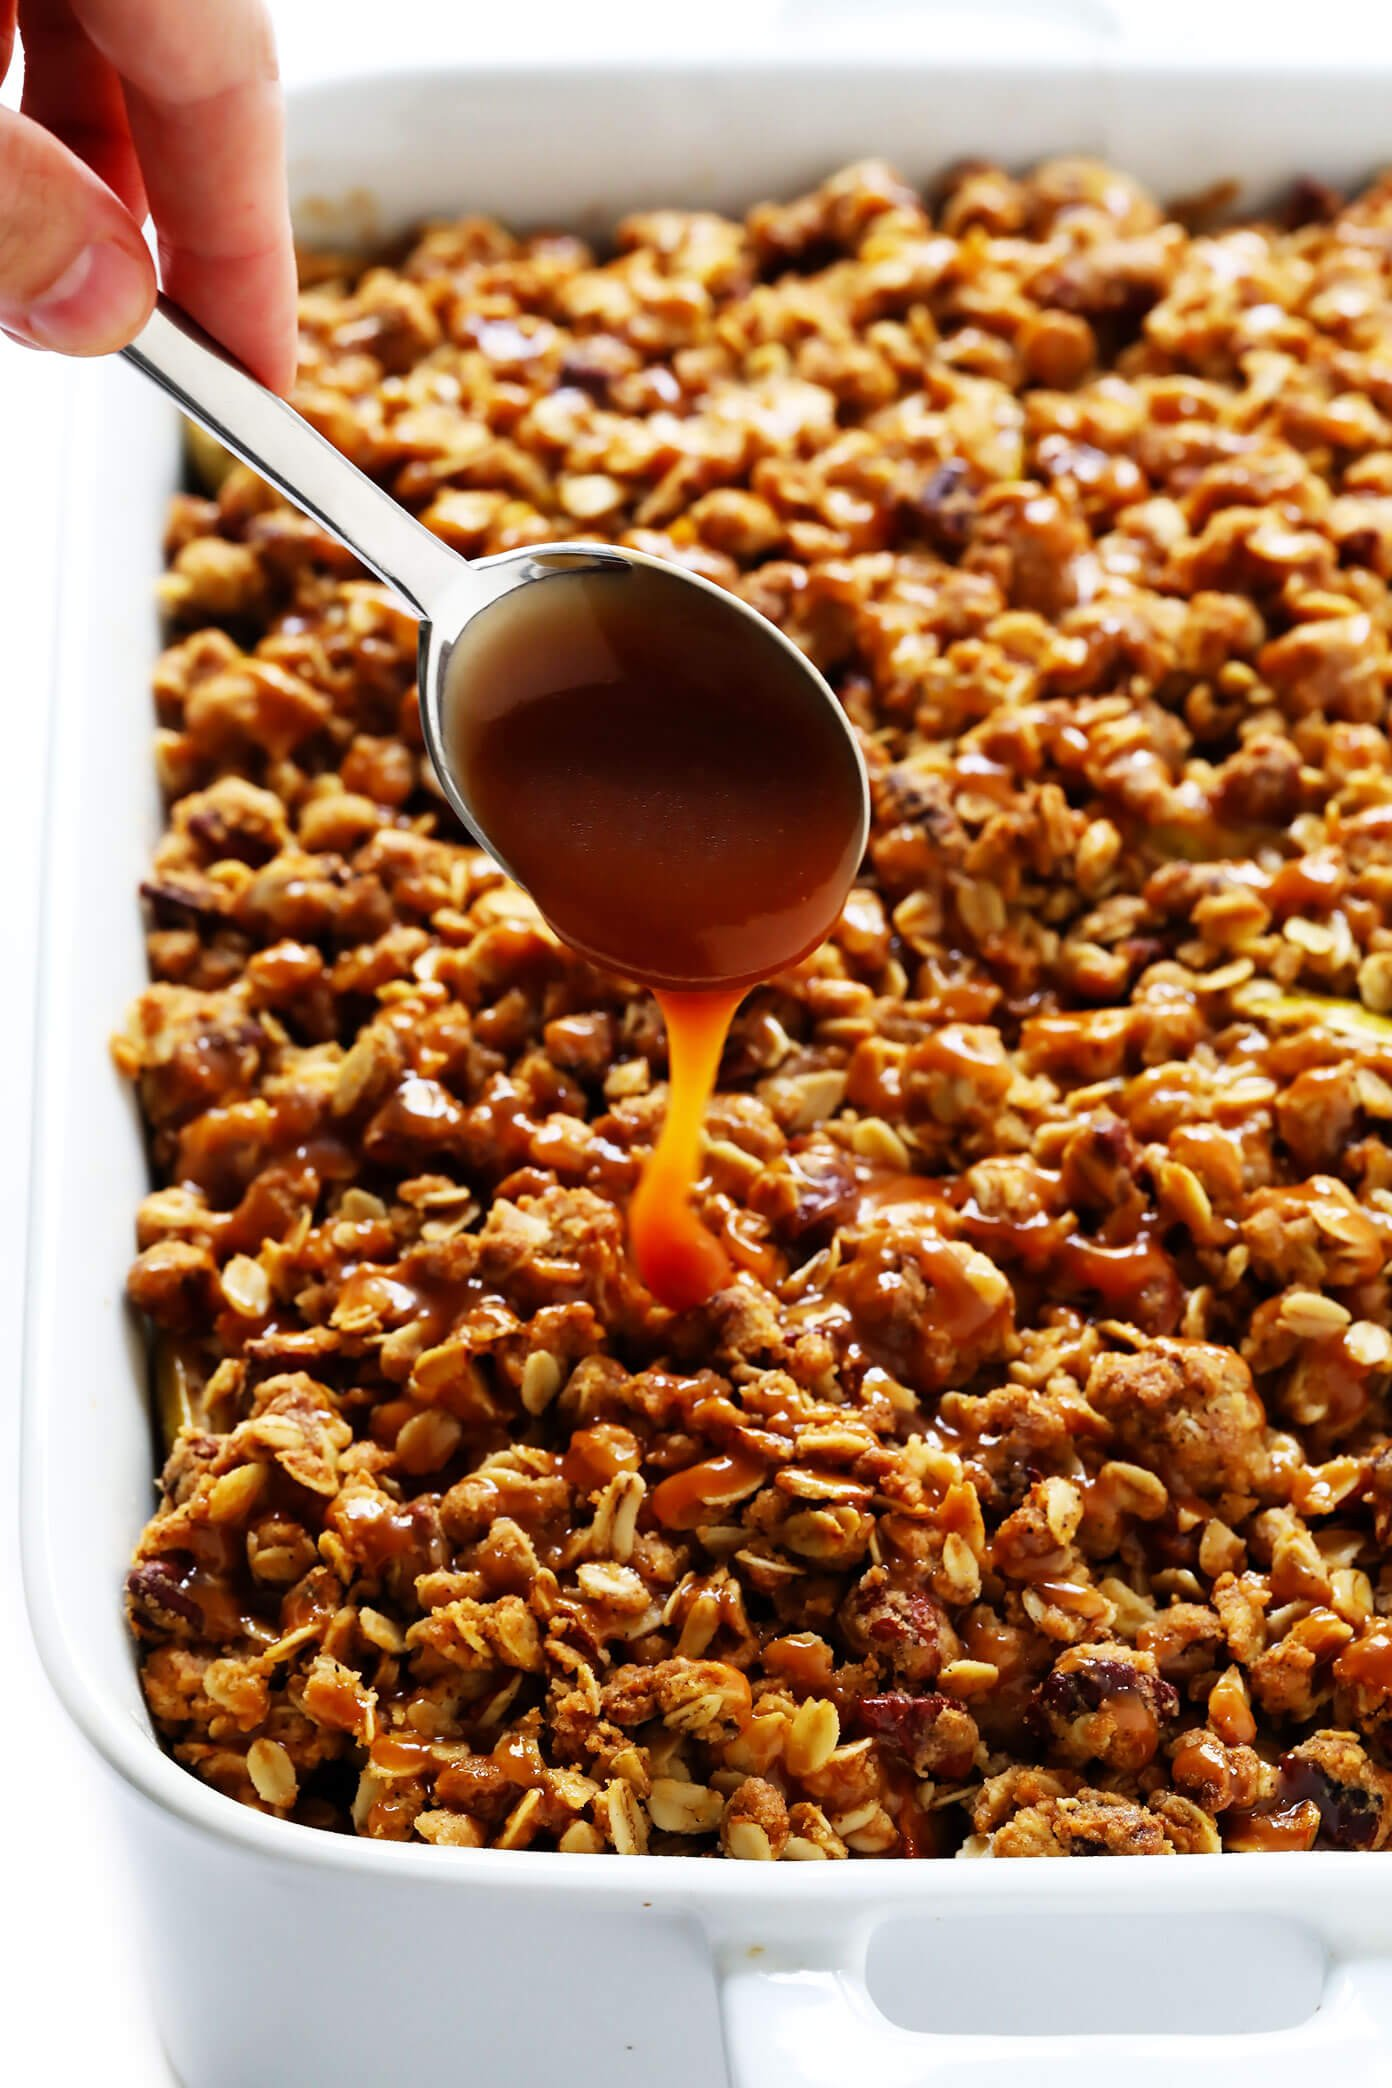 Easy Apple Crisp Recipe with Caramel Sauce